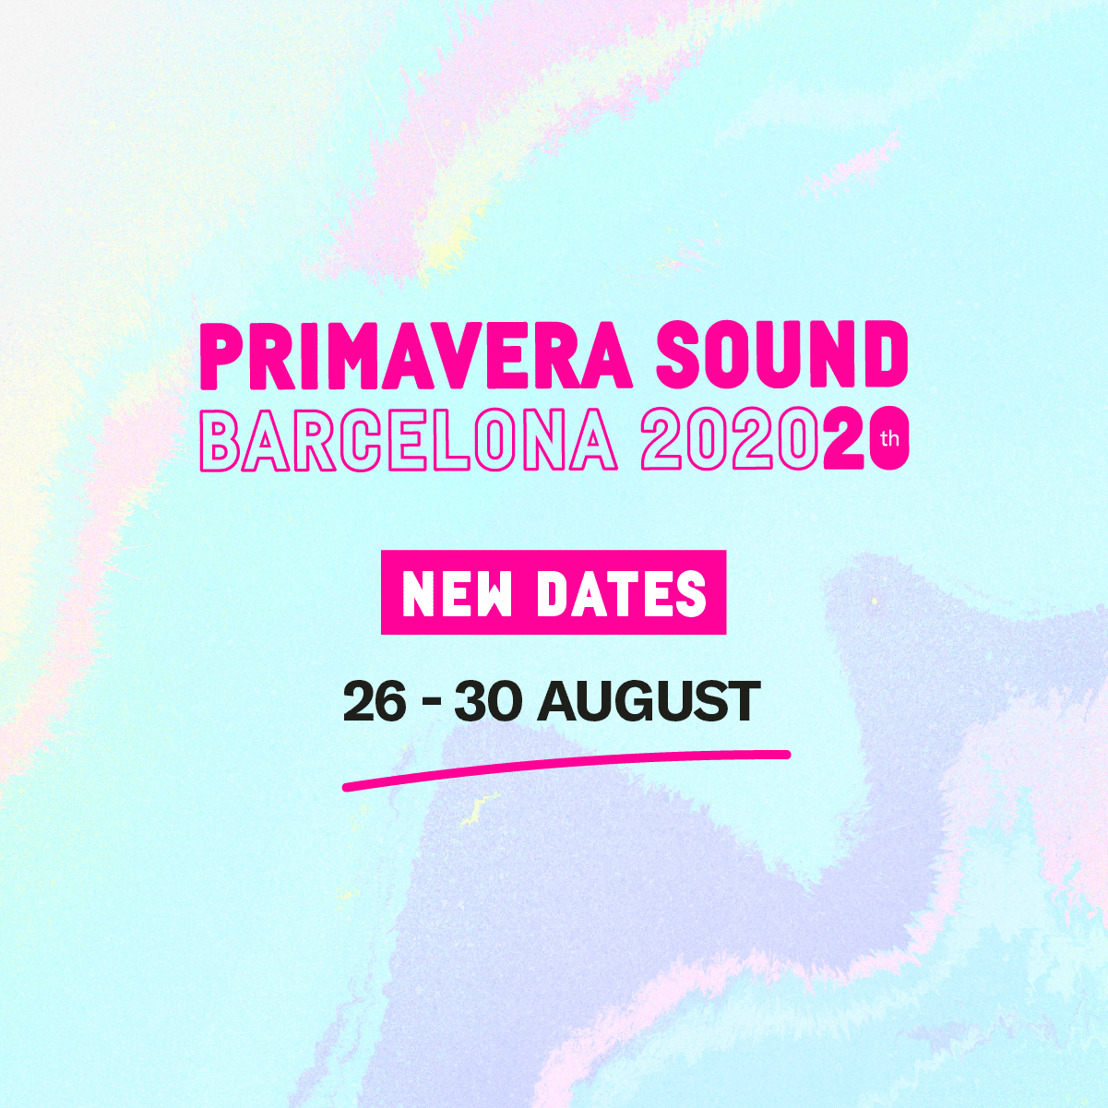 Primavera Sound Barcelona 2020 changes dates and will now take place in August